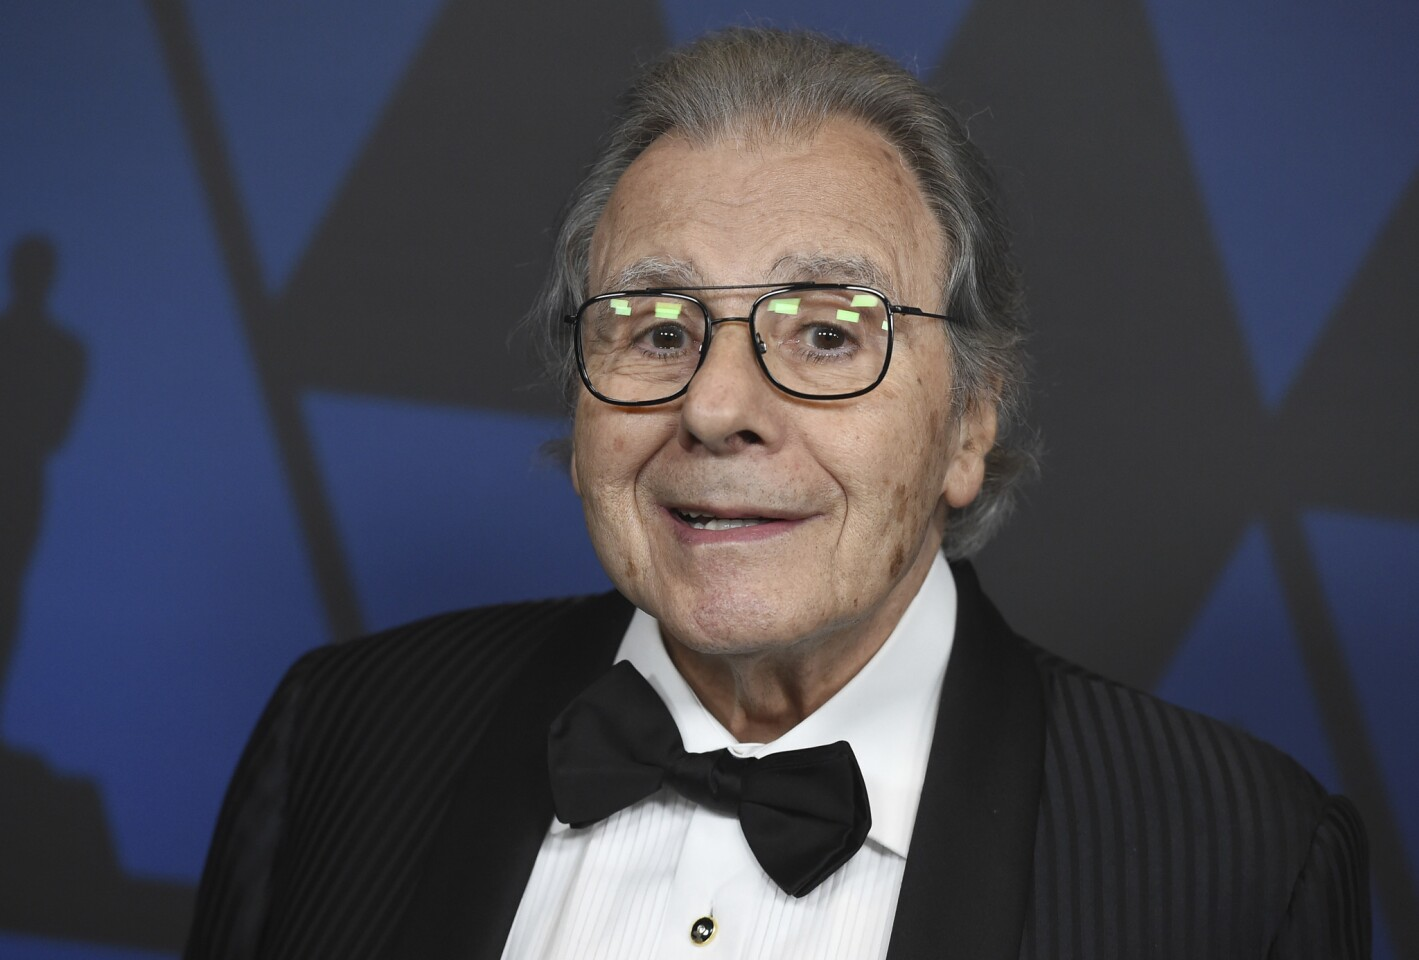 Honoree Lalo Schifrin arrives at the Governors Awards at the Dolby Theatre in Los Angeles.